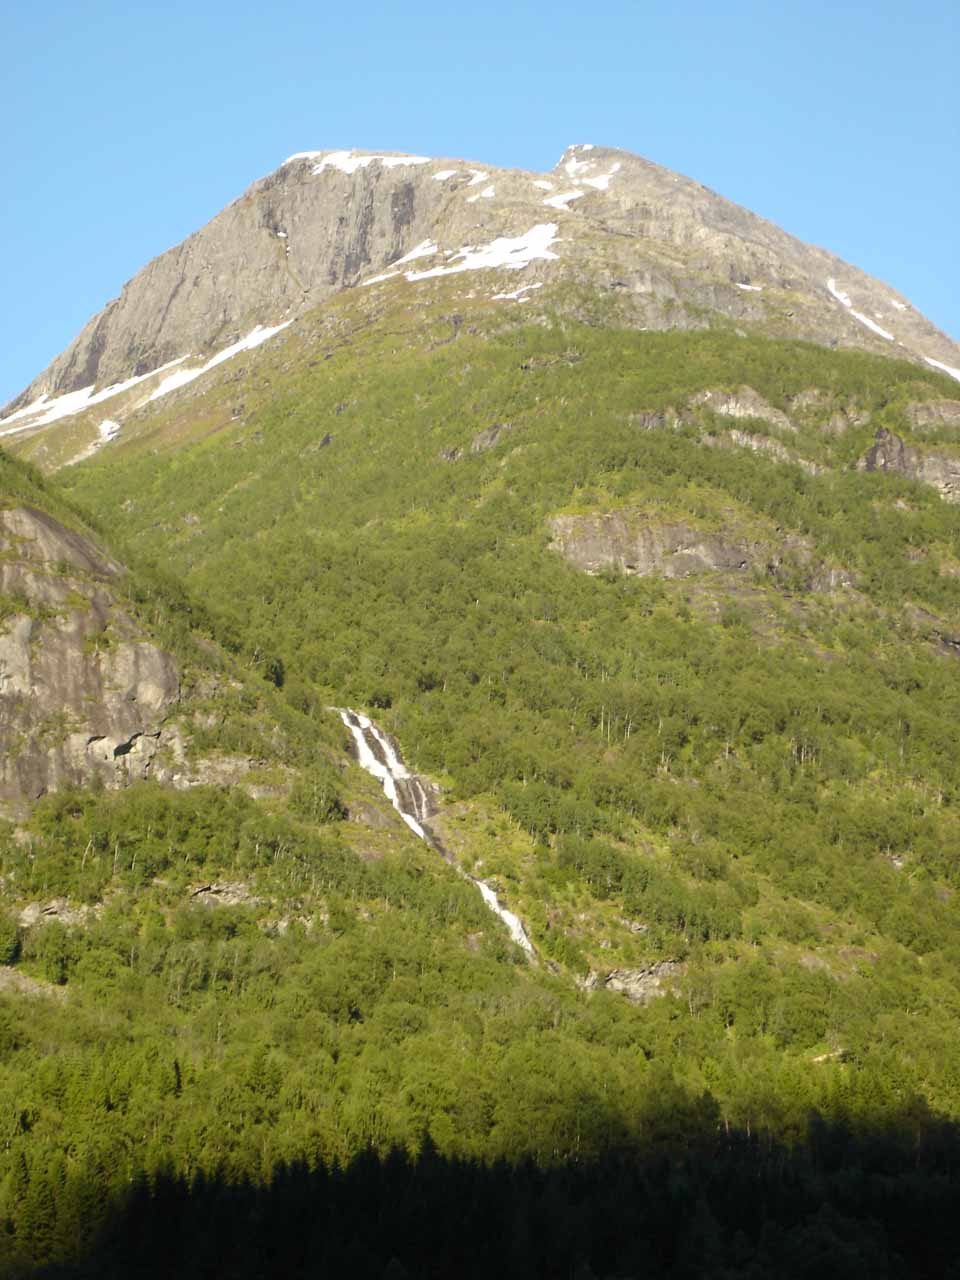 Finally, this waterfall that we saw closer to the mouth of Oldedalen might be the one on Storelva (Big River) and could very well be officially named Hundefossen (Dog Falls)